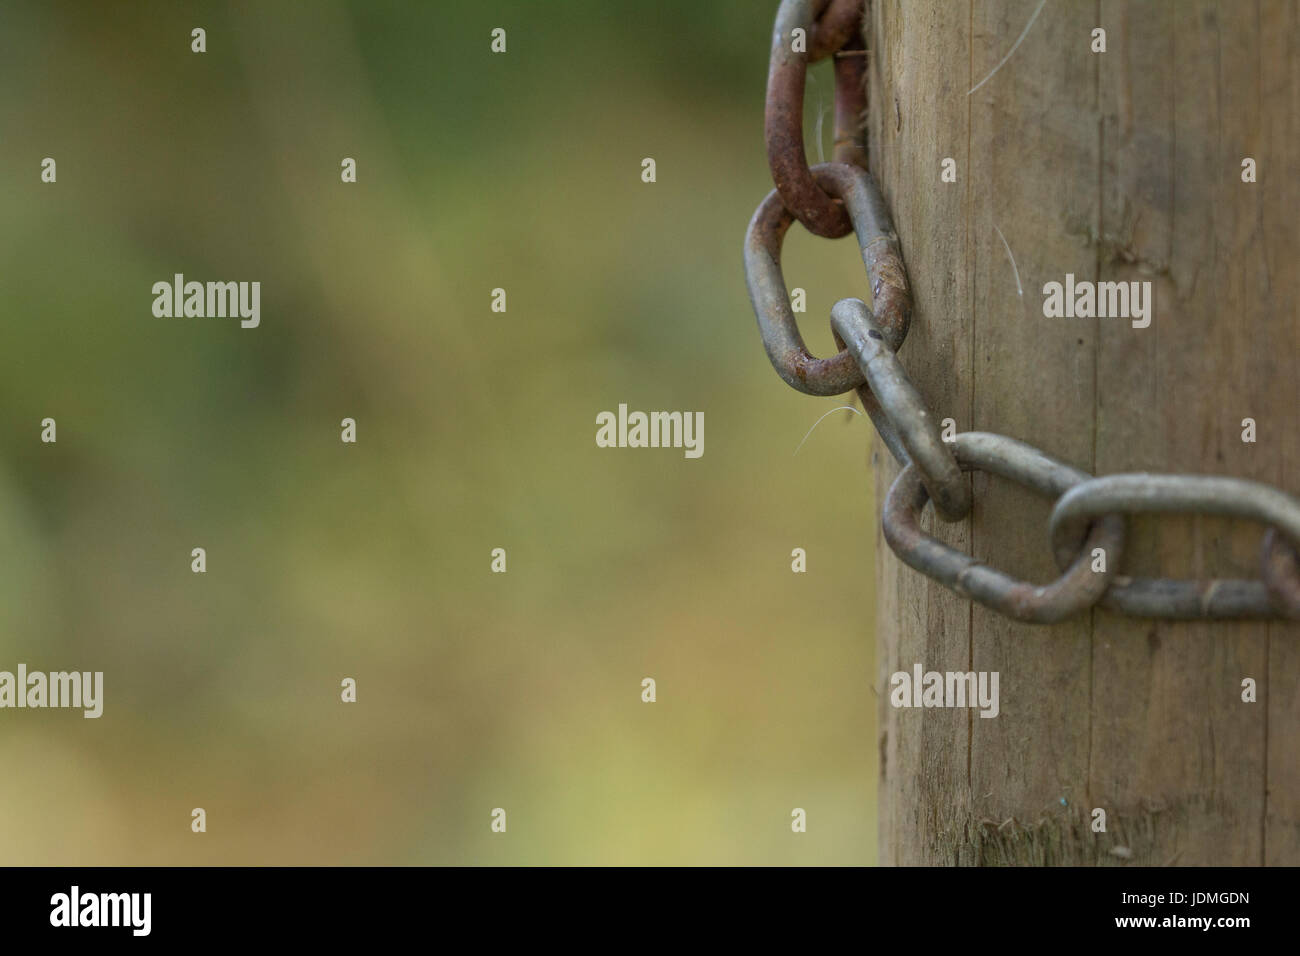 A metal chain around a wooden post with copy space. - Stock Image